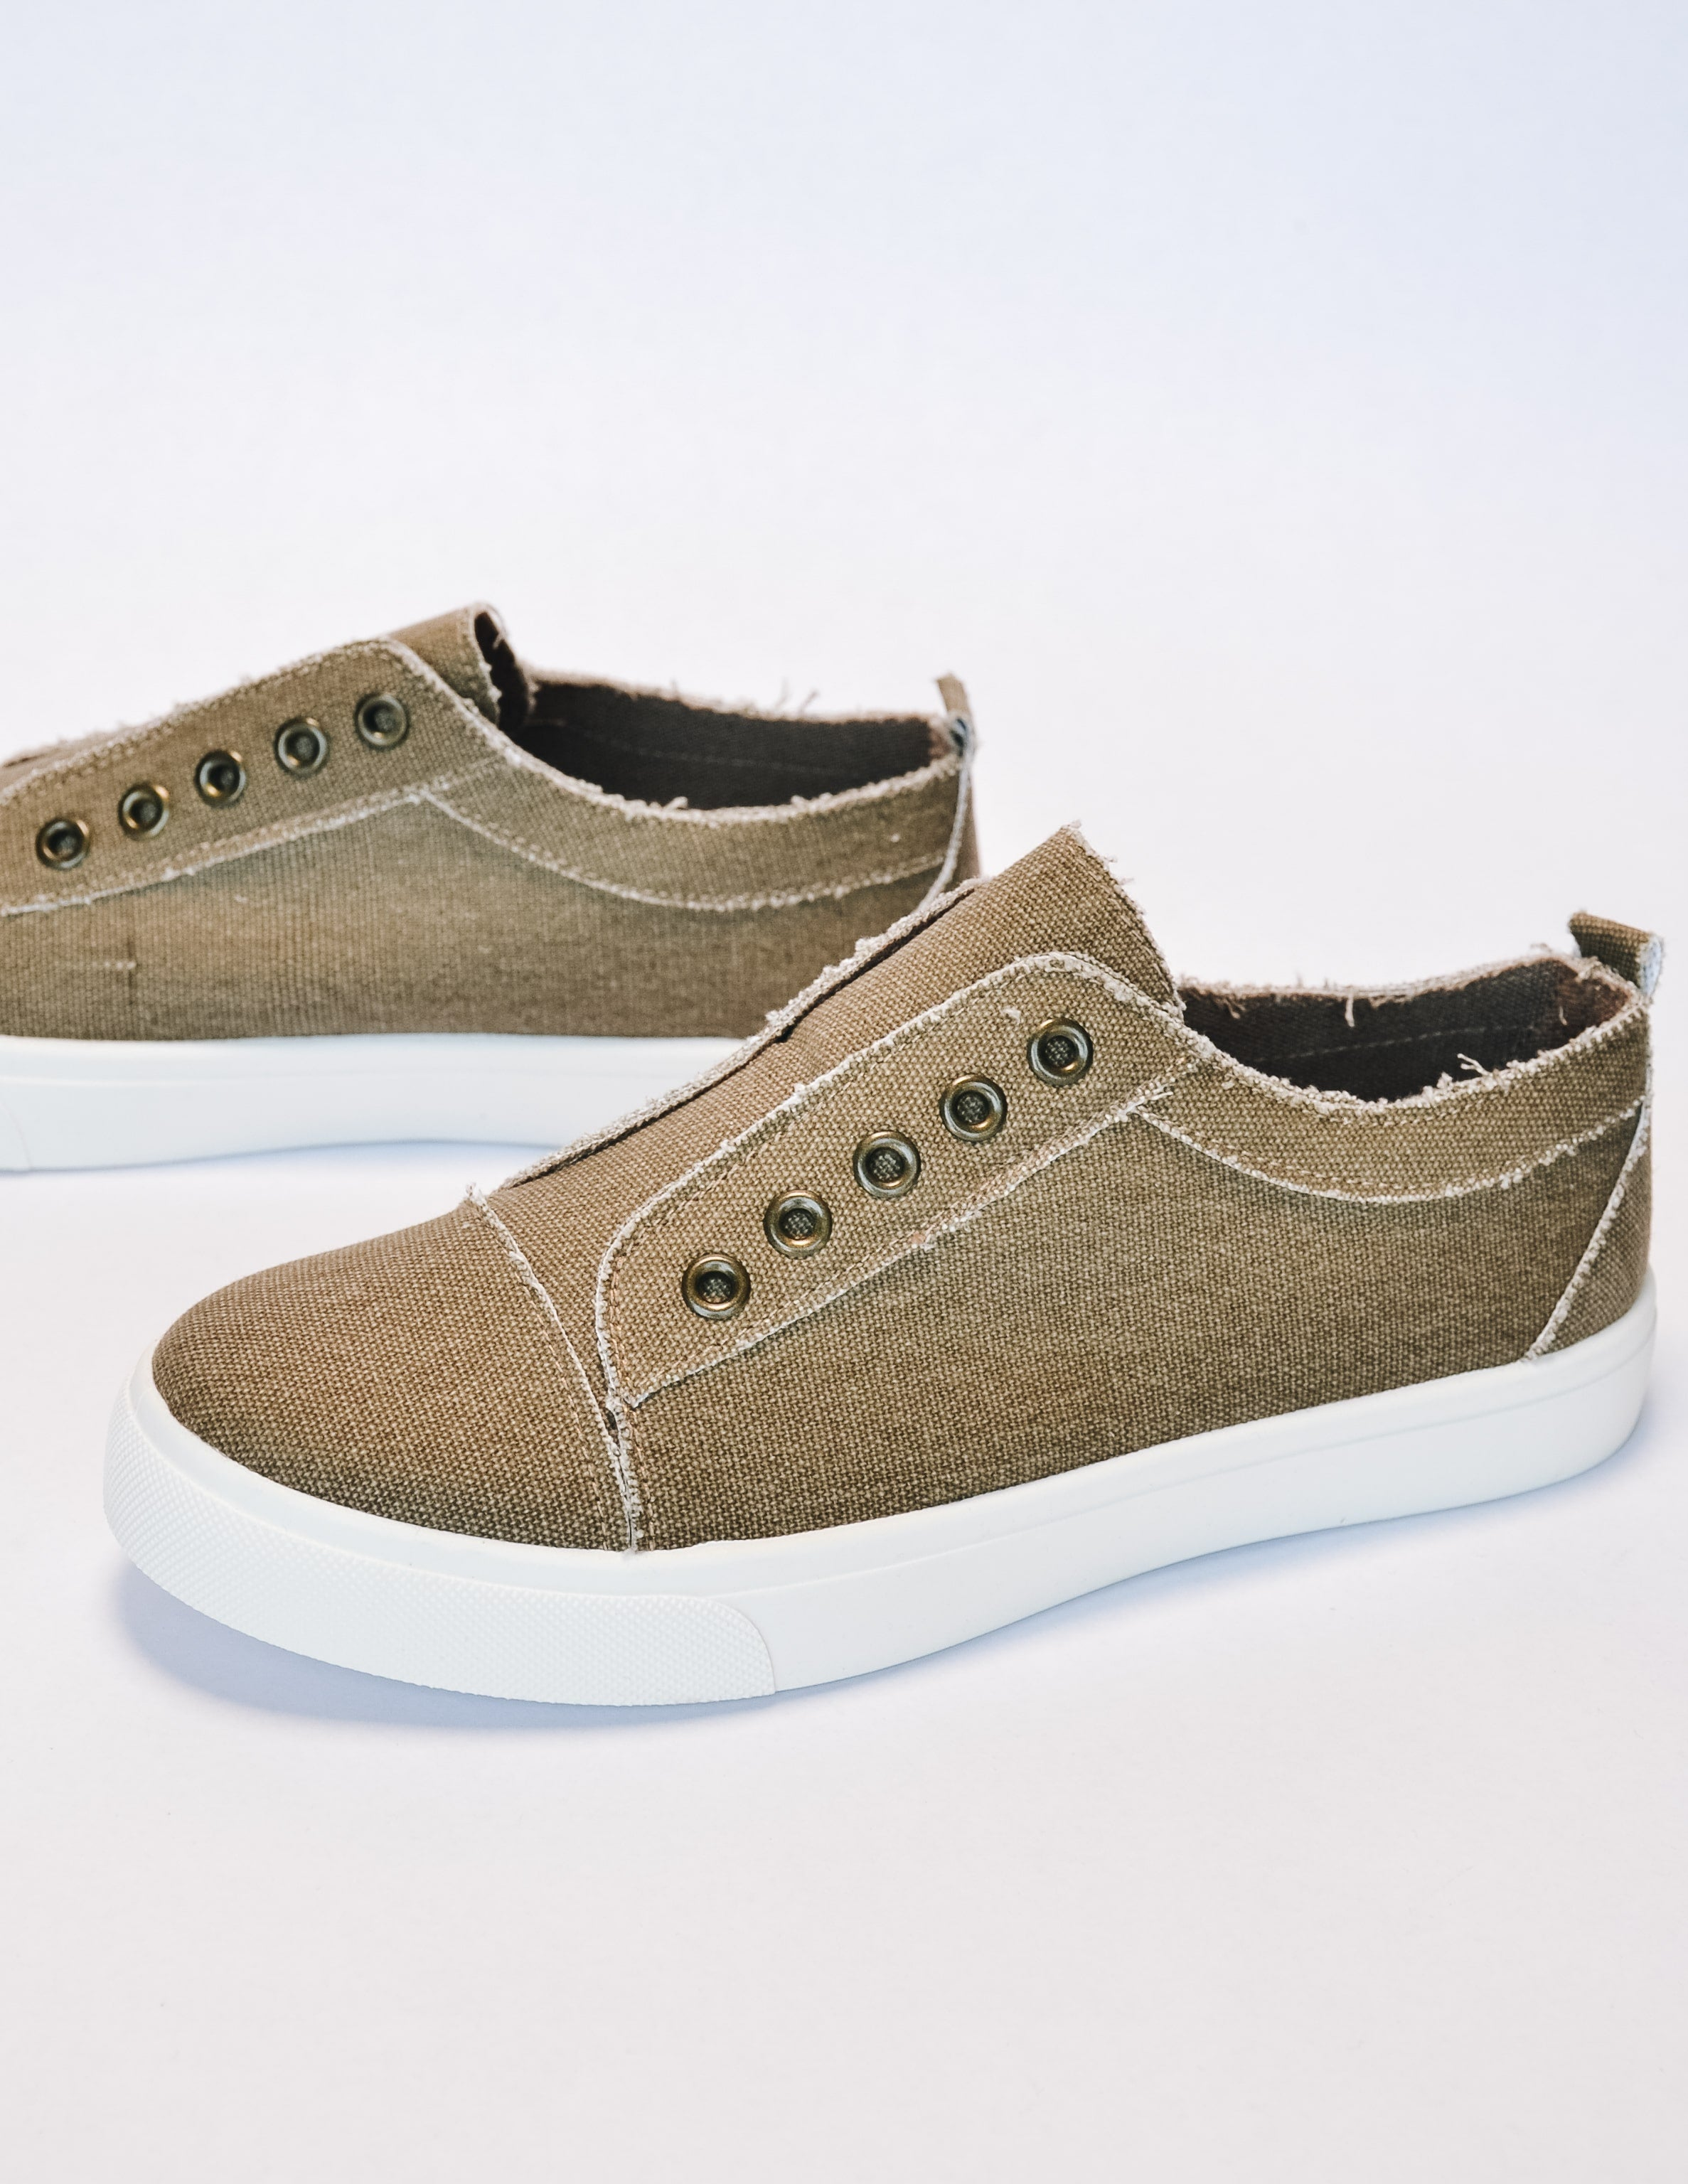 Get your sneak on sneaker in taupe with rivets and white sole